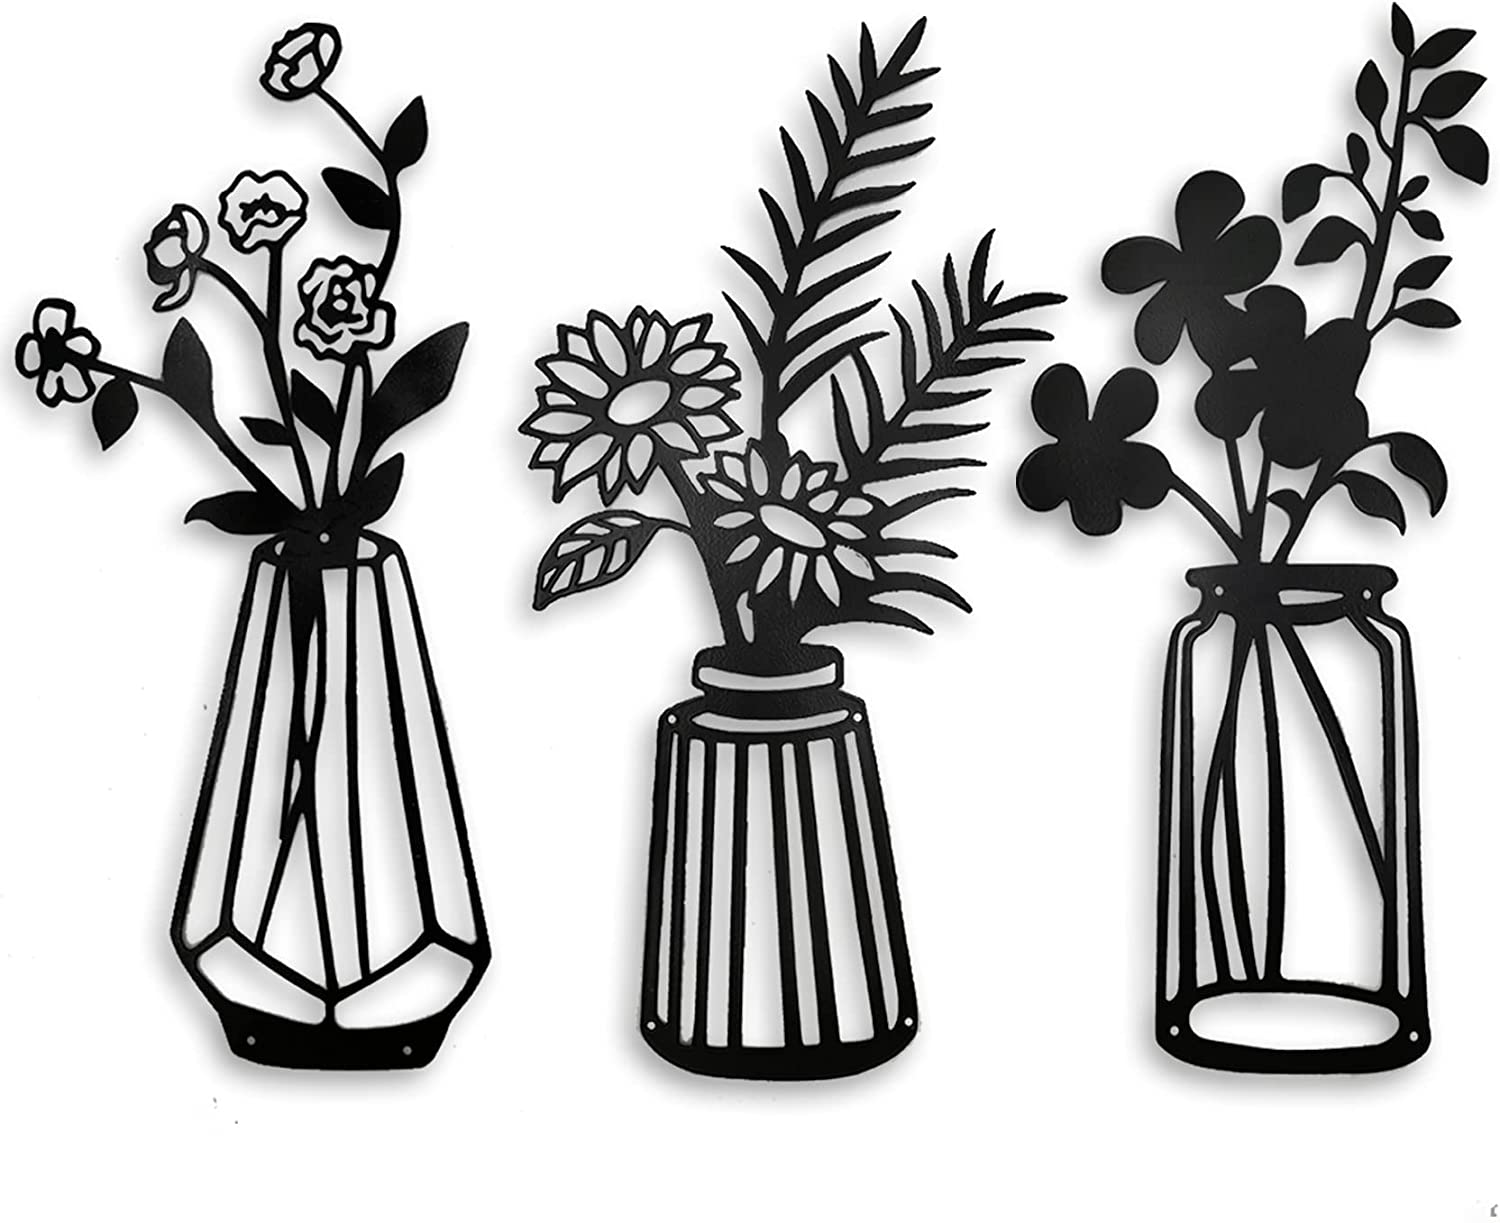 Set of 3 Metal Flowers Wall Decor, Metal Wall Sculpture for Patio Balcony Fence Yard Garden, Black Metal Wall Decor Art for Living Room Bathroom Bedroom Dining Room Kitchen.